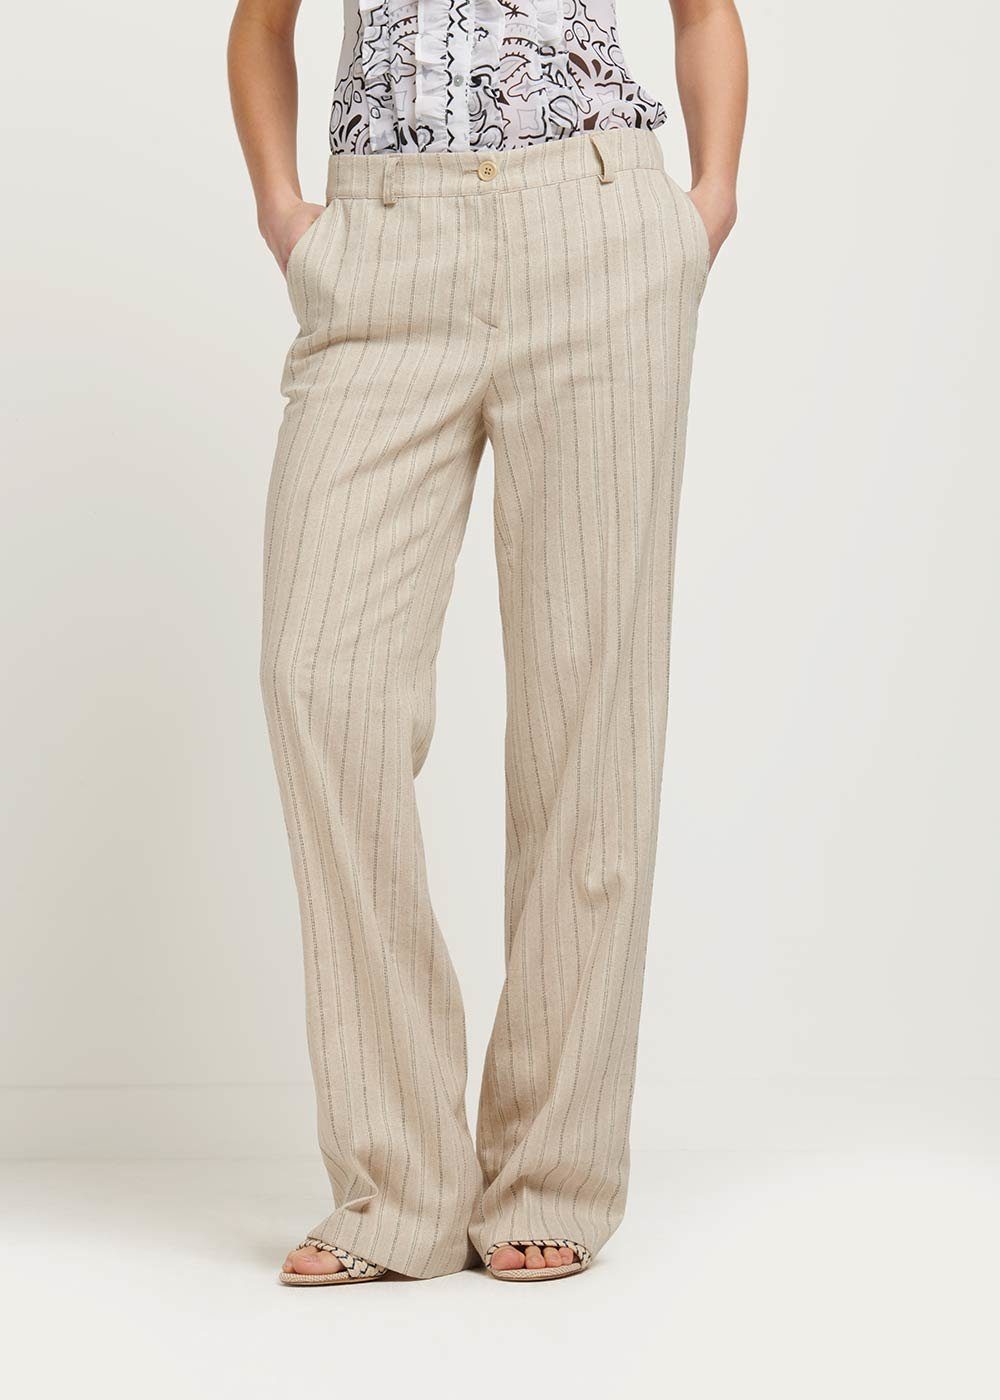 Pantalone Ashley gessato - Beige \ Silver Stripes - Donna